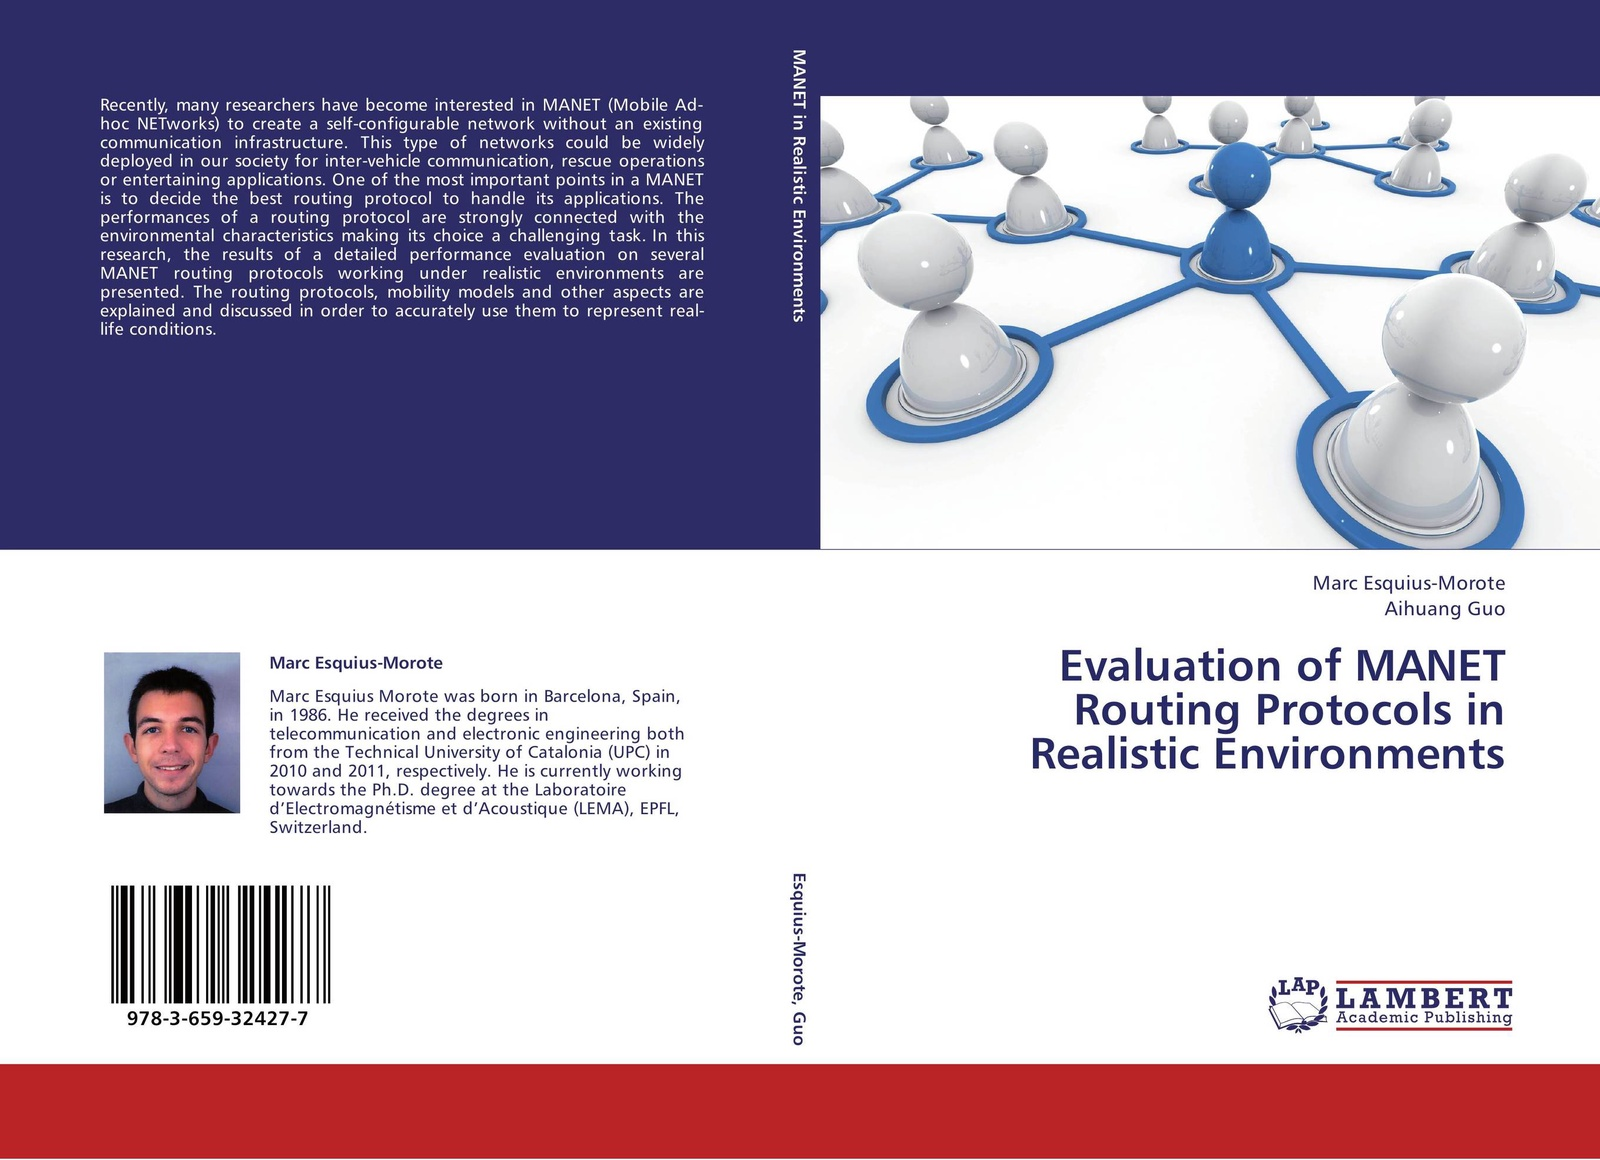 Marc Esquius-Morote and Aihuang Guo Evaluation of MANET Routing Protocols in Realistic Environments стоимость